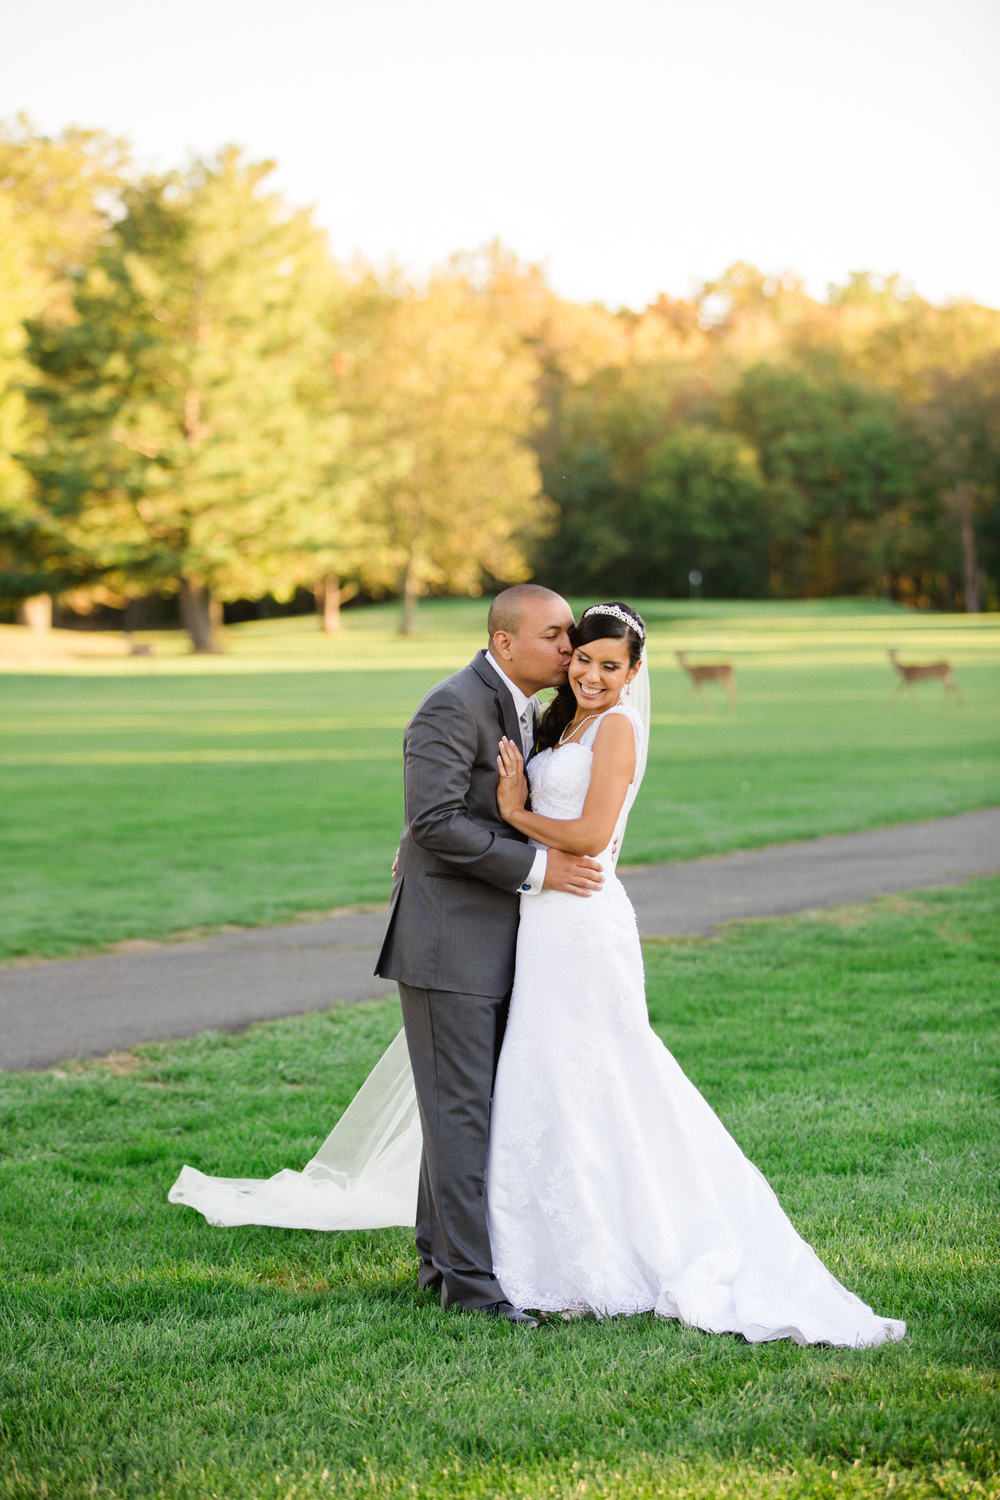 Vness_Photography_Eva&Alfred_Wedding-357.jpg